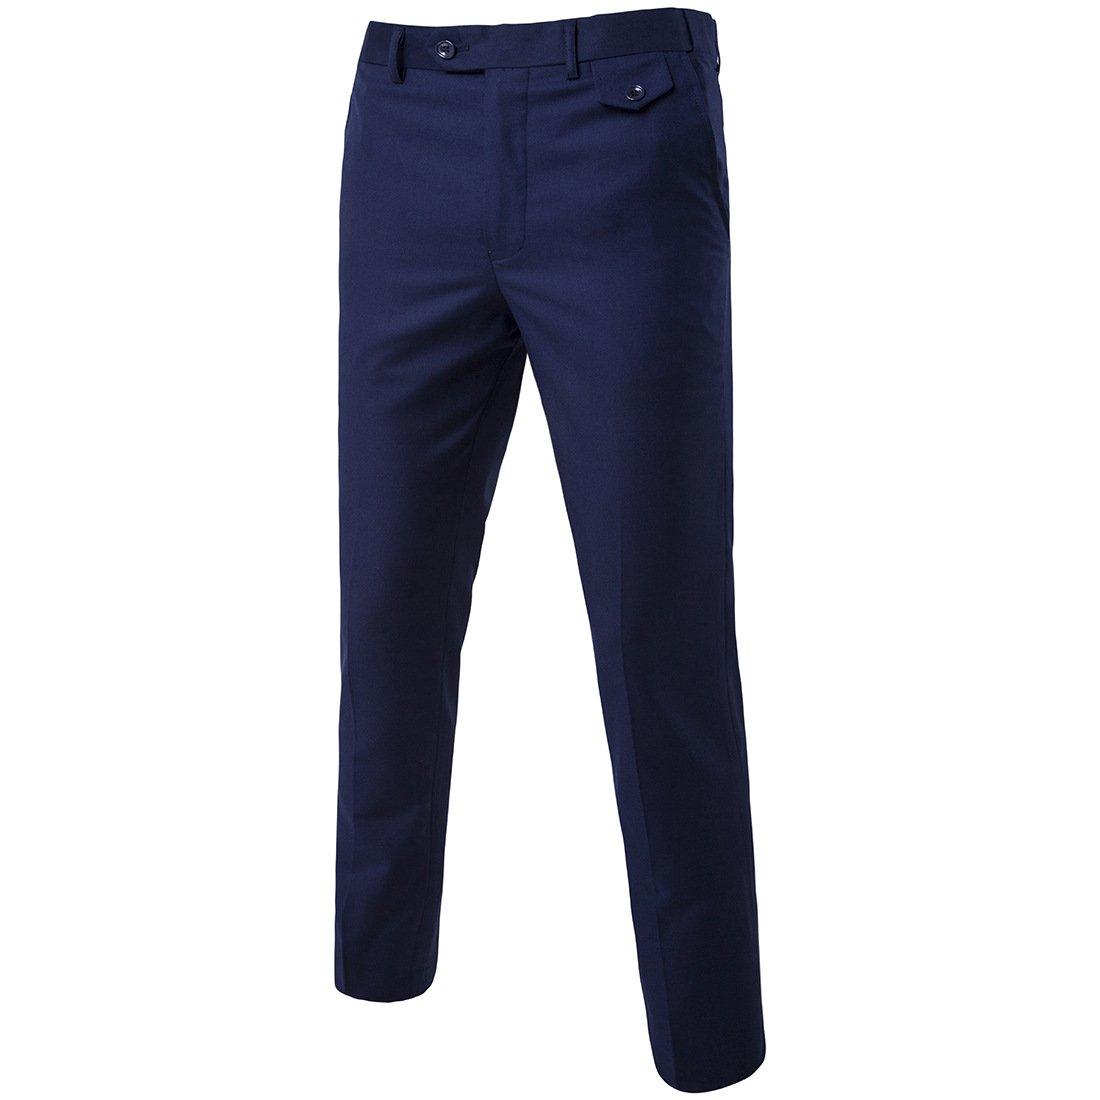 MAGE MALE Men's Classic Slim Fit Suit Pants Flat Front Wrinkle-free Stretch Casual Solid Long Trousers